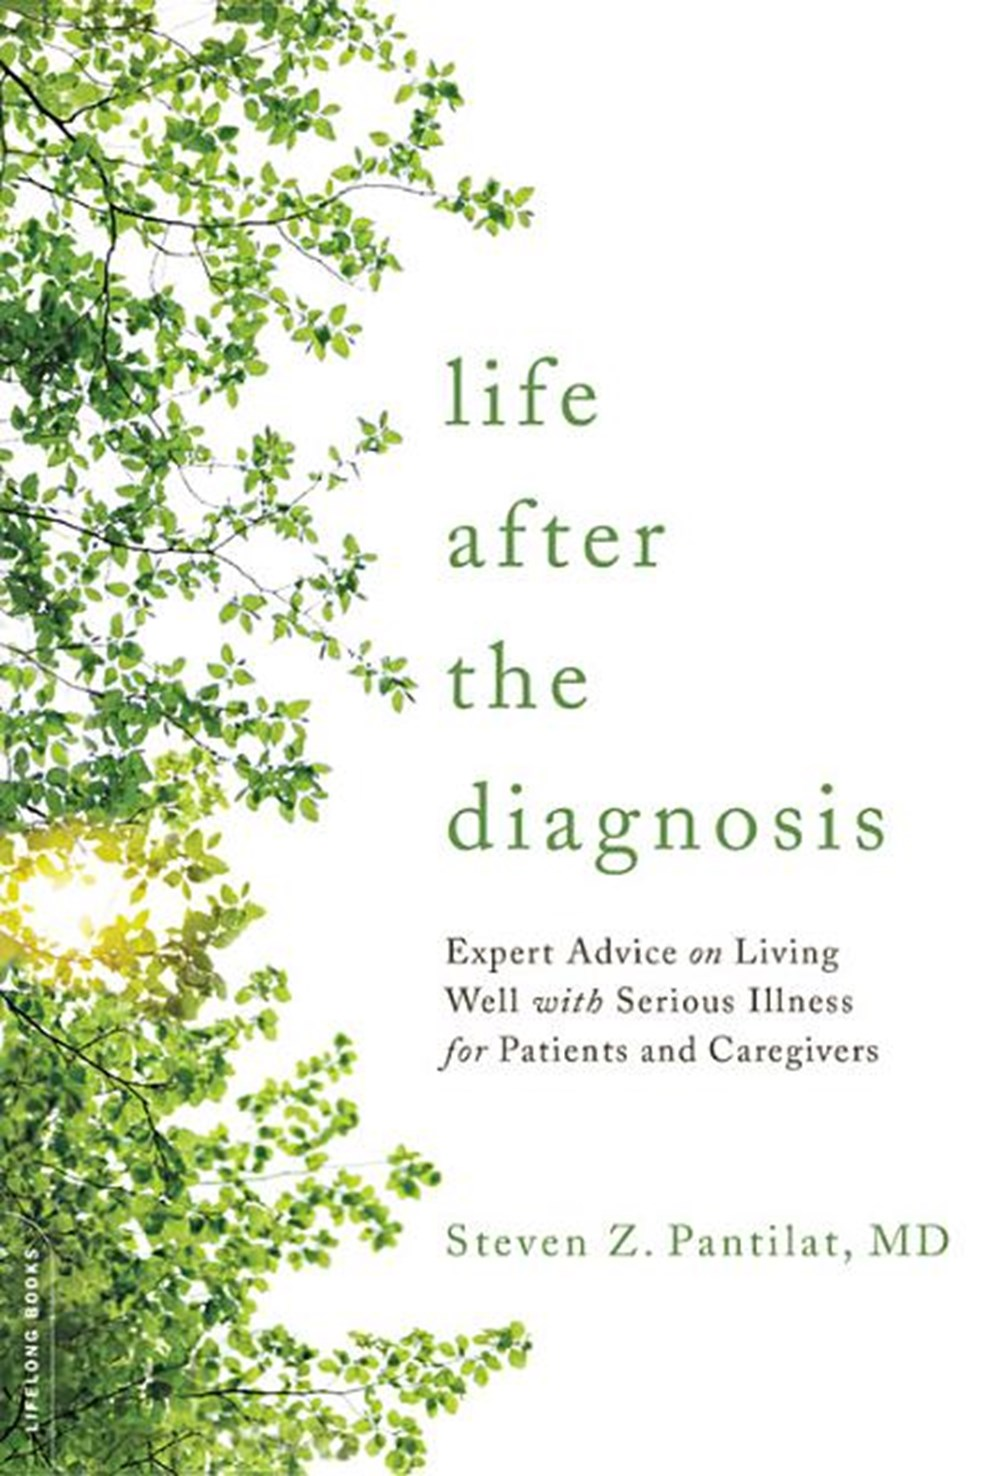 Life After the Diagnosis Expert Advice on Living Well with Serious Illness for Patients and Caregive